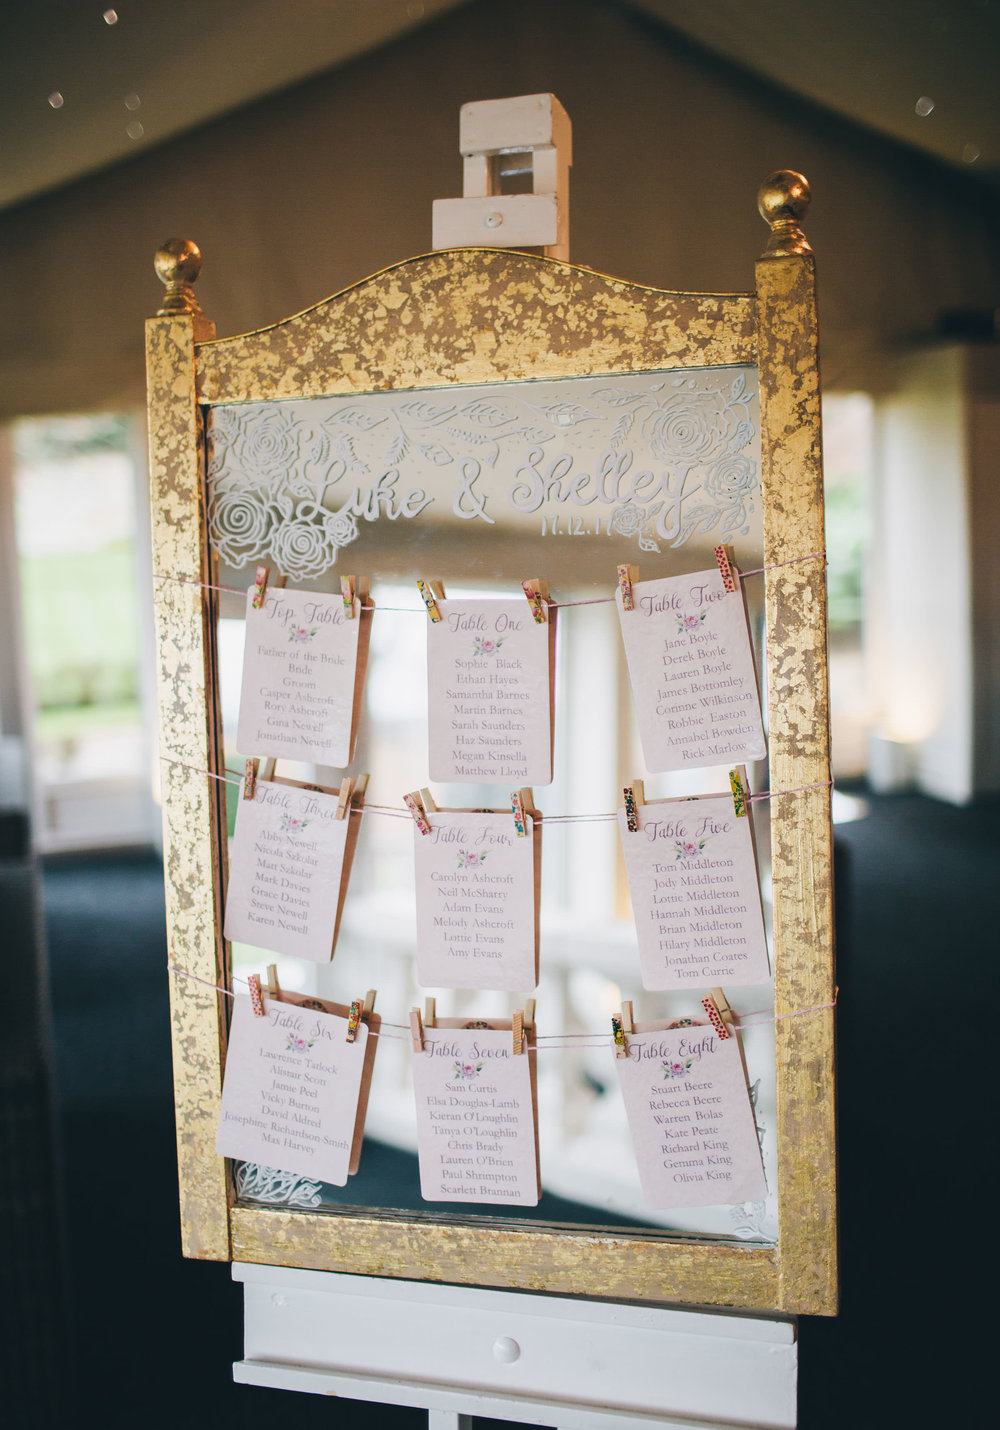 the wedding seating plan. Winter wedding at Combermere Abbey.